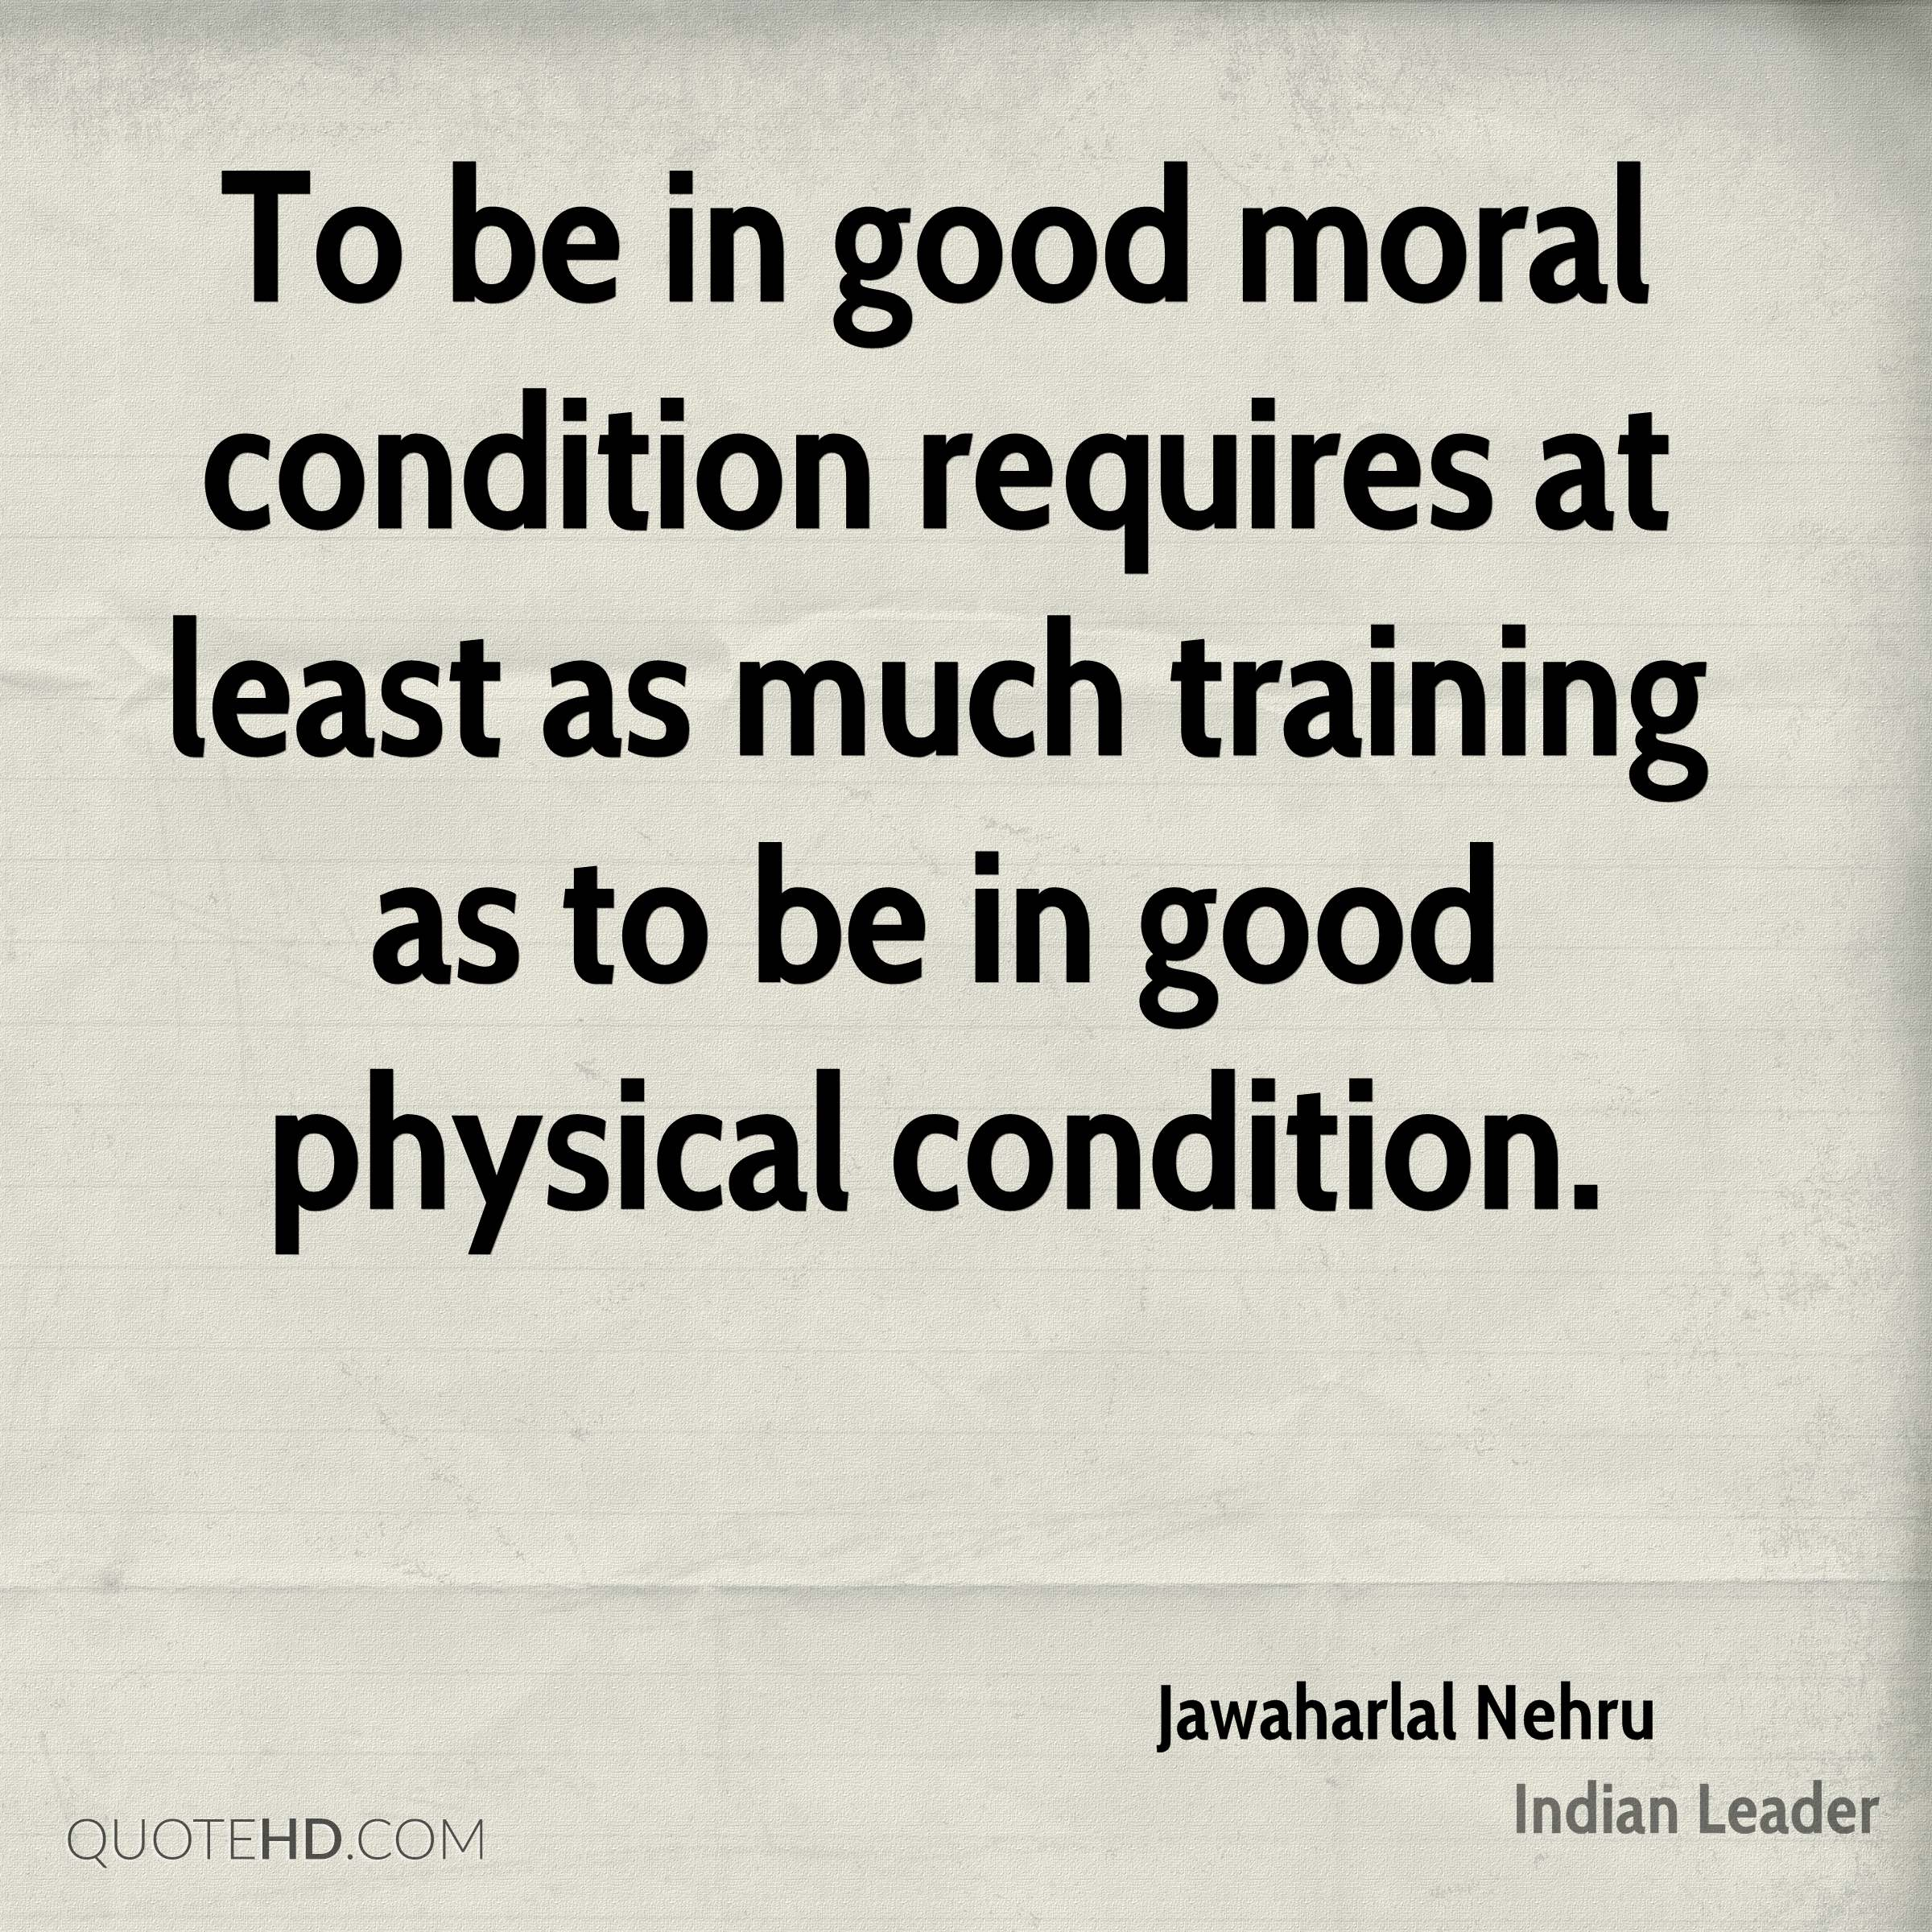 To be in good moral condition requires at least as much training as to be in good physical condition.